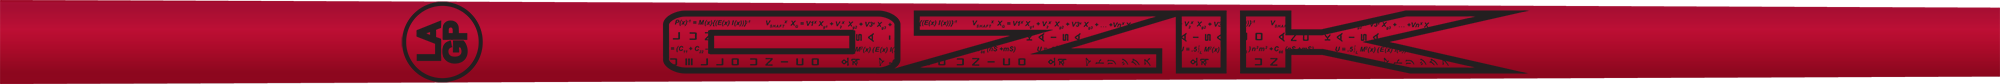 Ozik White Tie: Candy Apple Red Black Satin - Wood 50 R